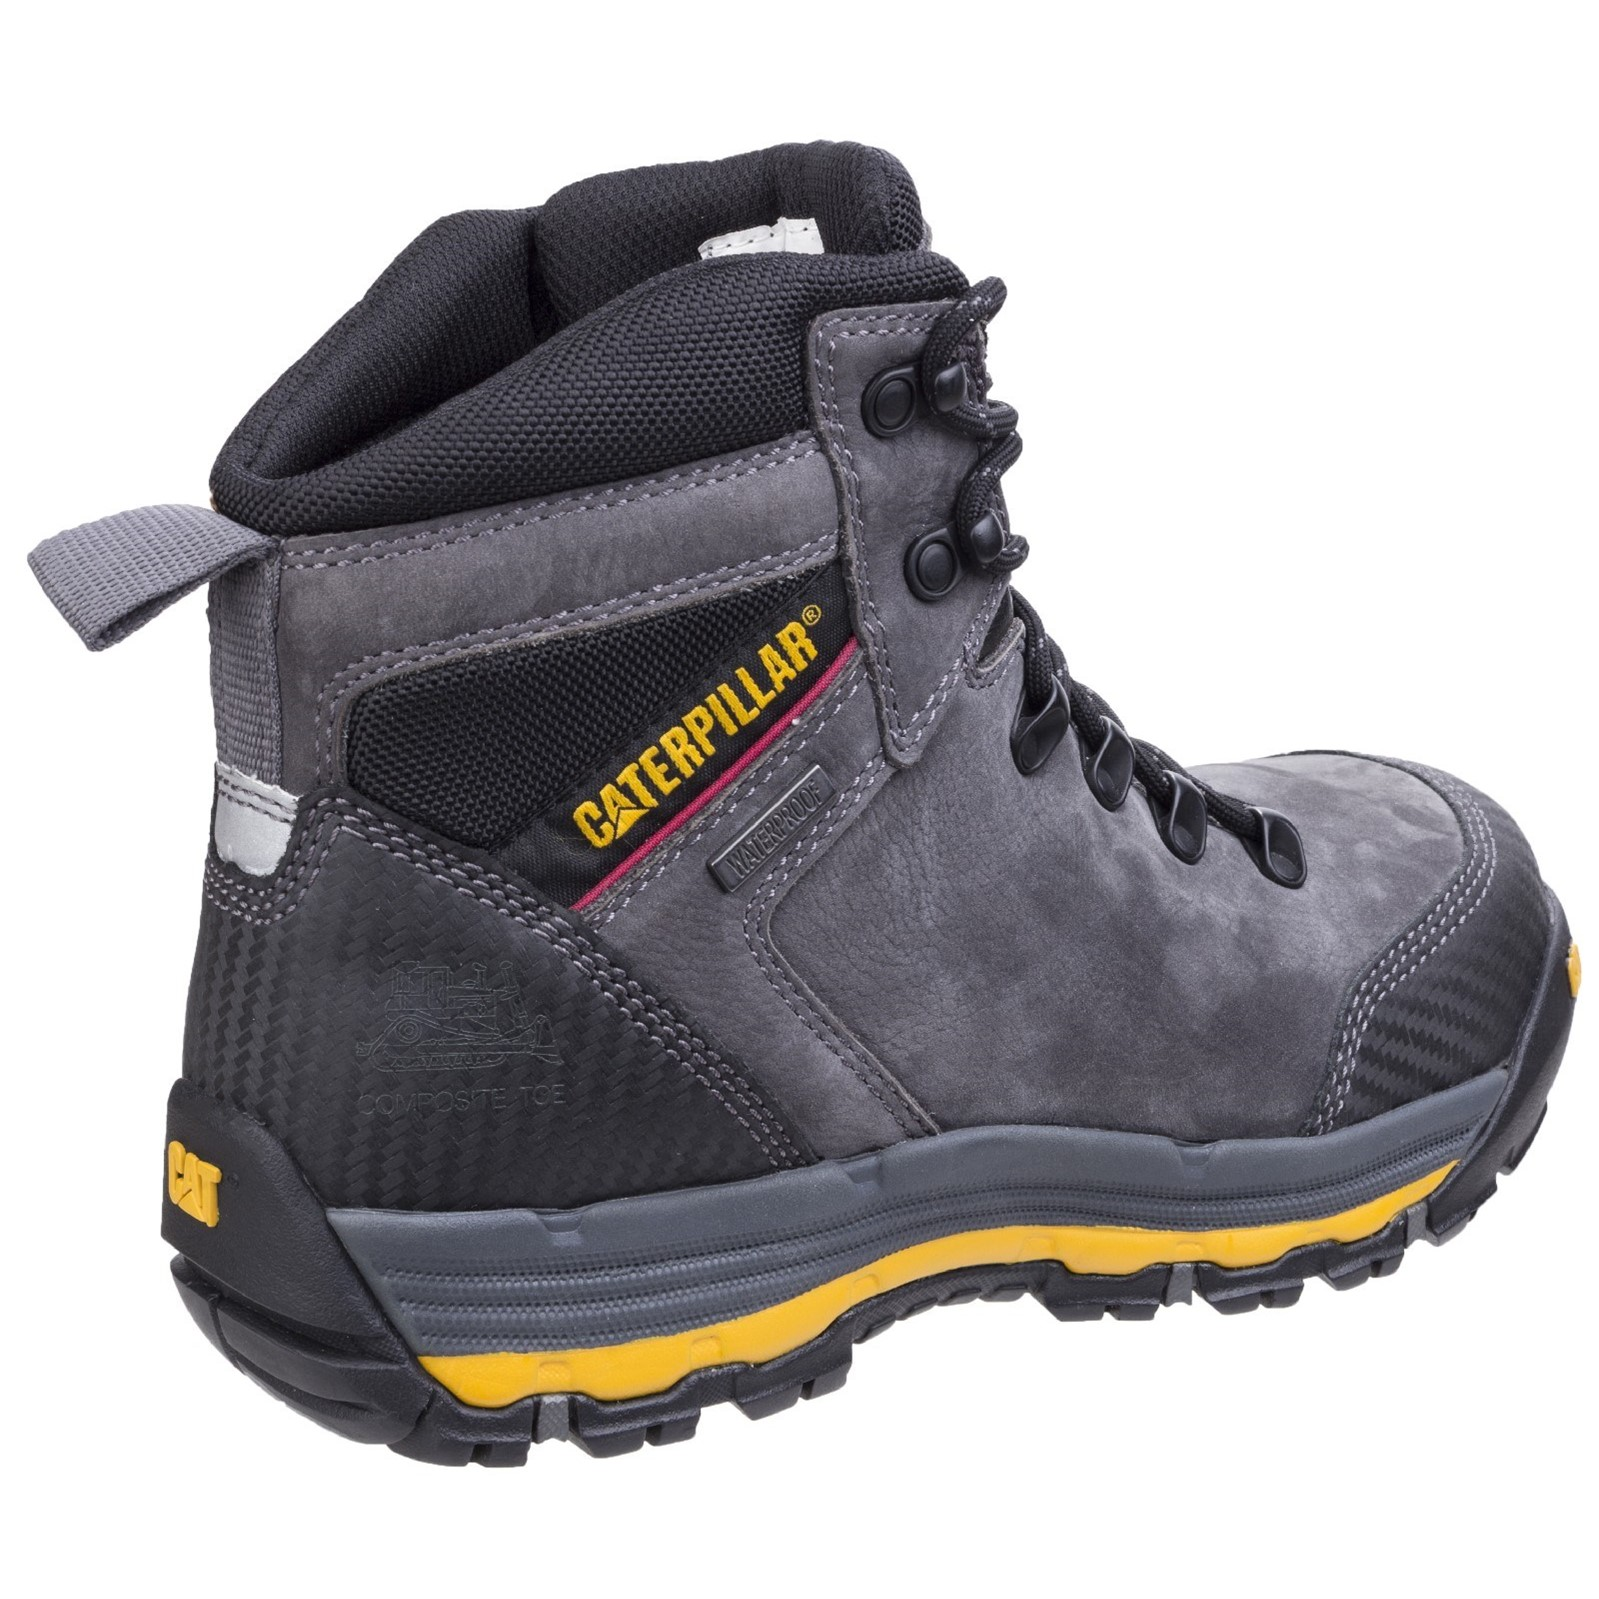 Work Boots & Shoes Caterpillar Cat Munising S3 Src Mens Steel Toe Cap Waterproof Safety Boots Ppe Personal Protective Equipment (ppe)